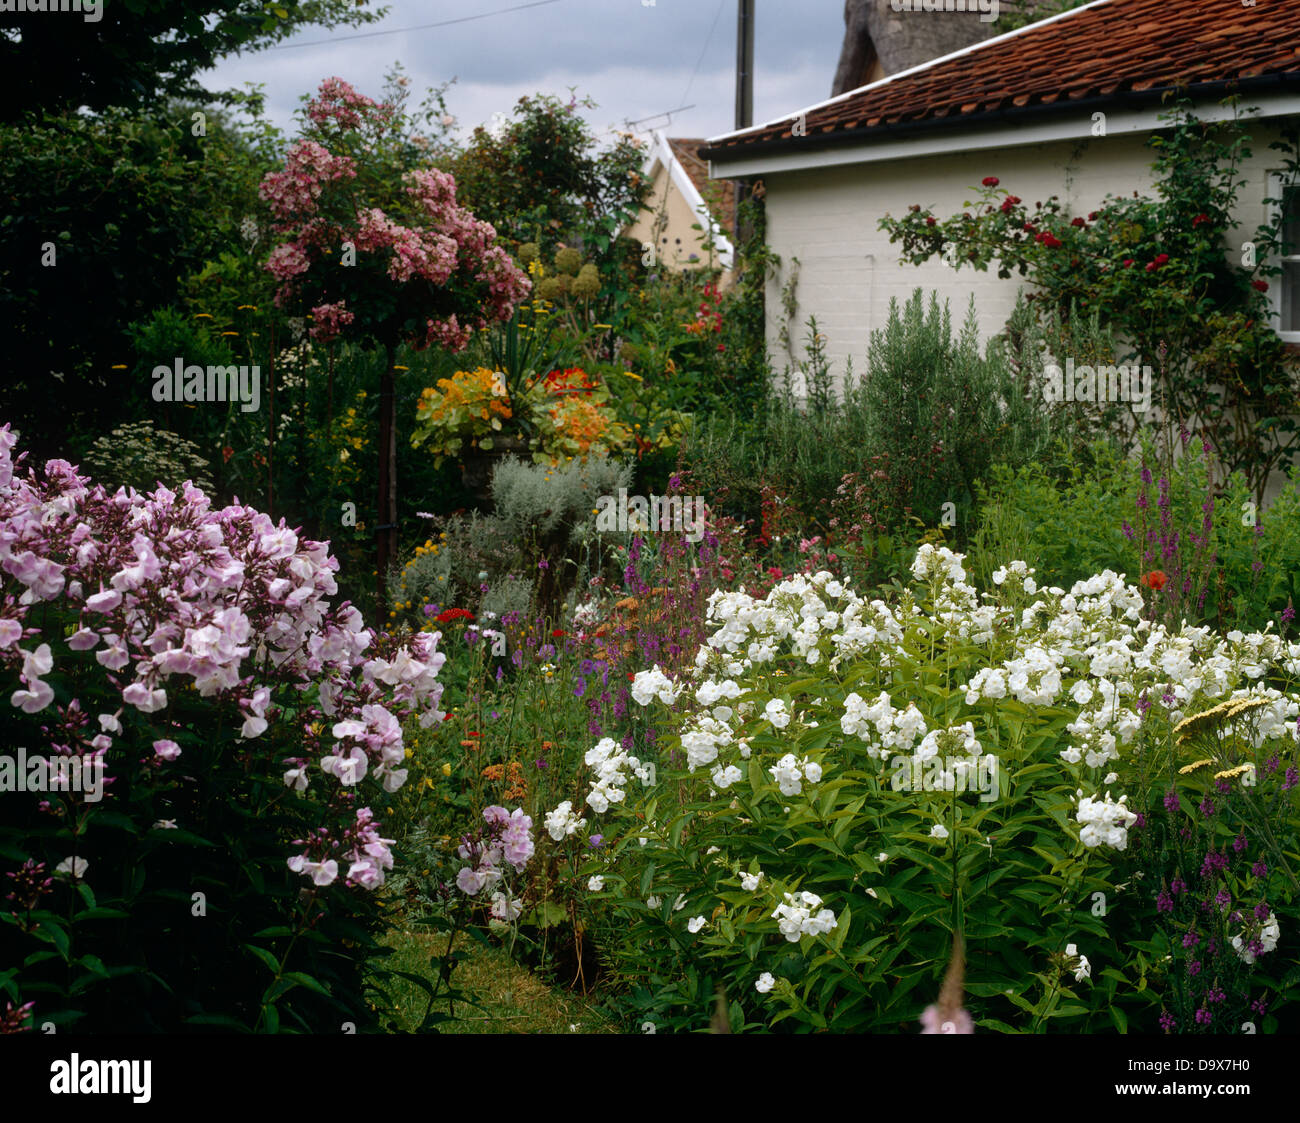 English Cottage Garden With Pink And White Phlox In Borders In